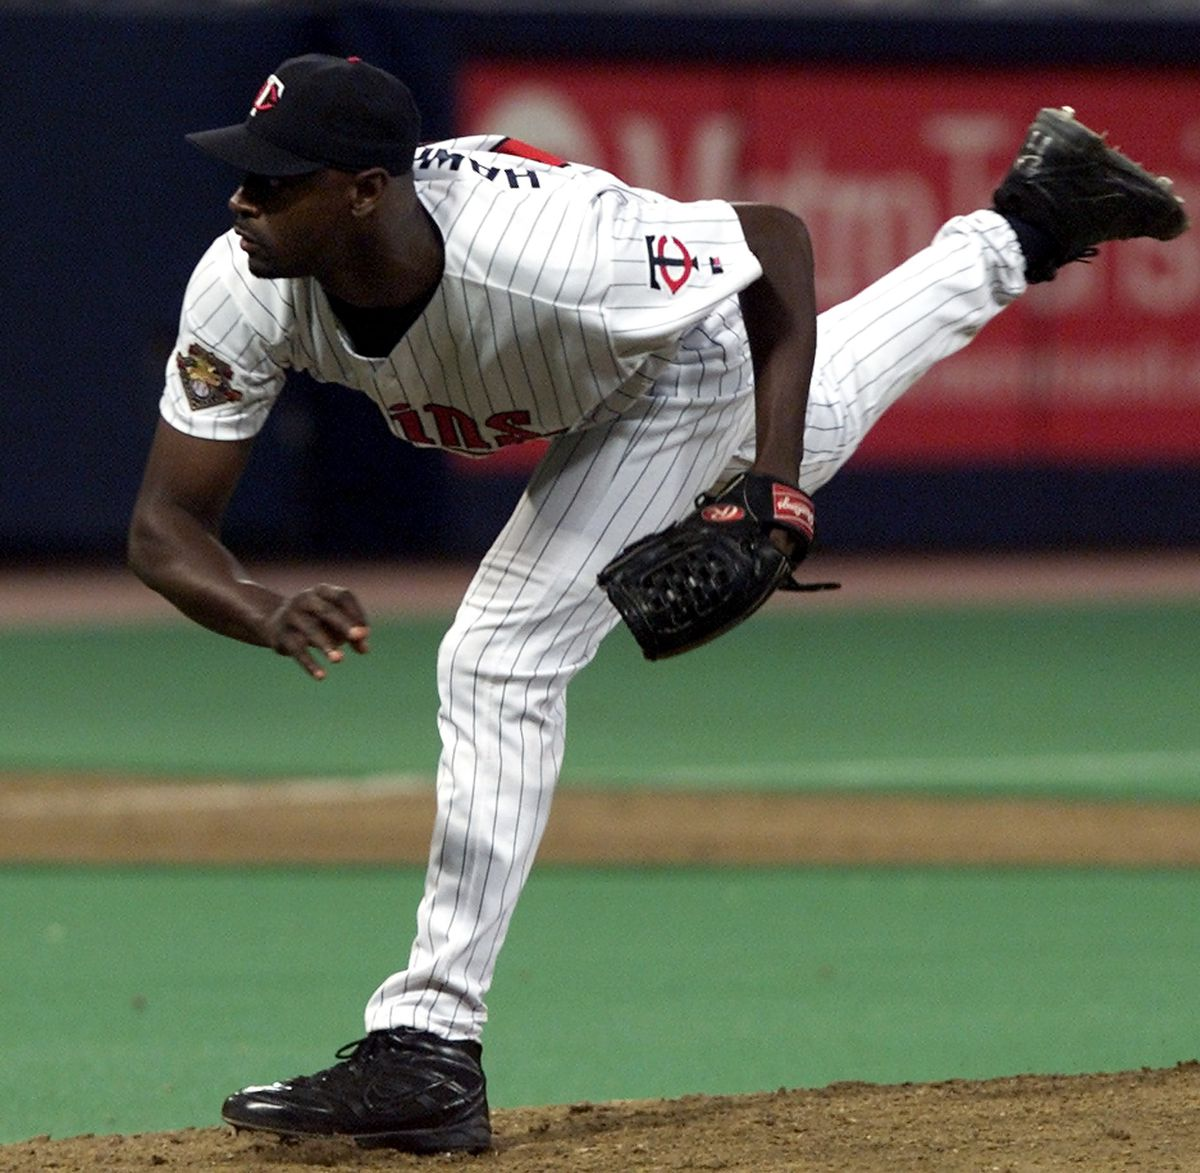 Twins reliever LaTroy Hawkins put down the Cincinnati side in the 9th inning to preserve the Twins victory.